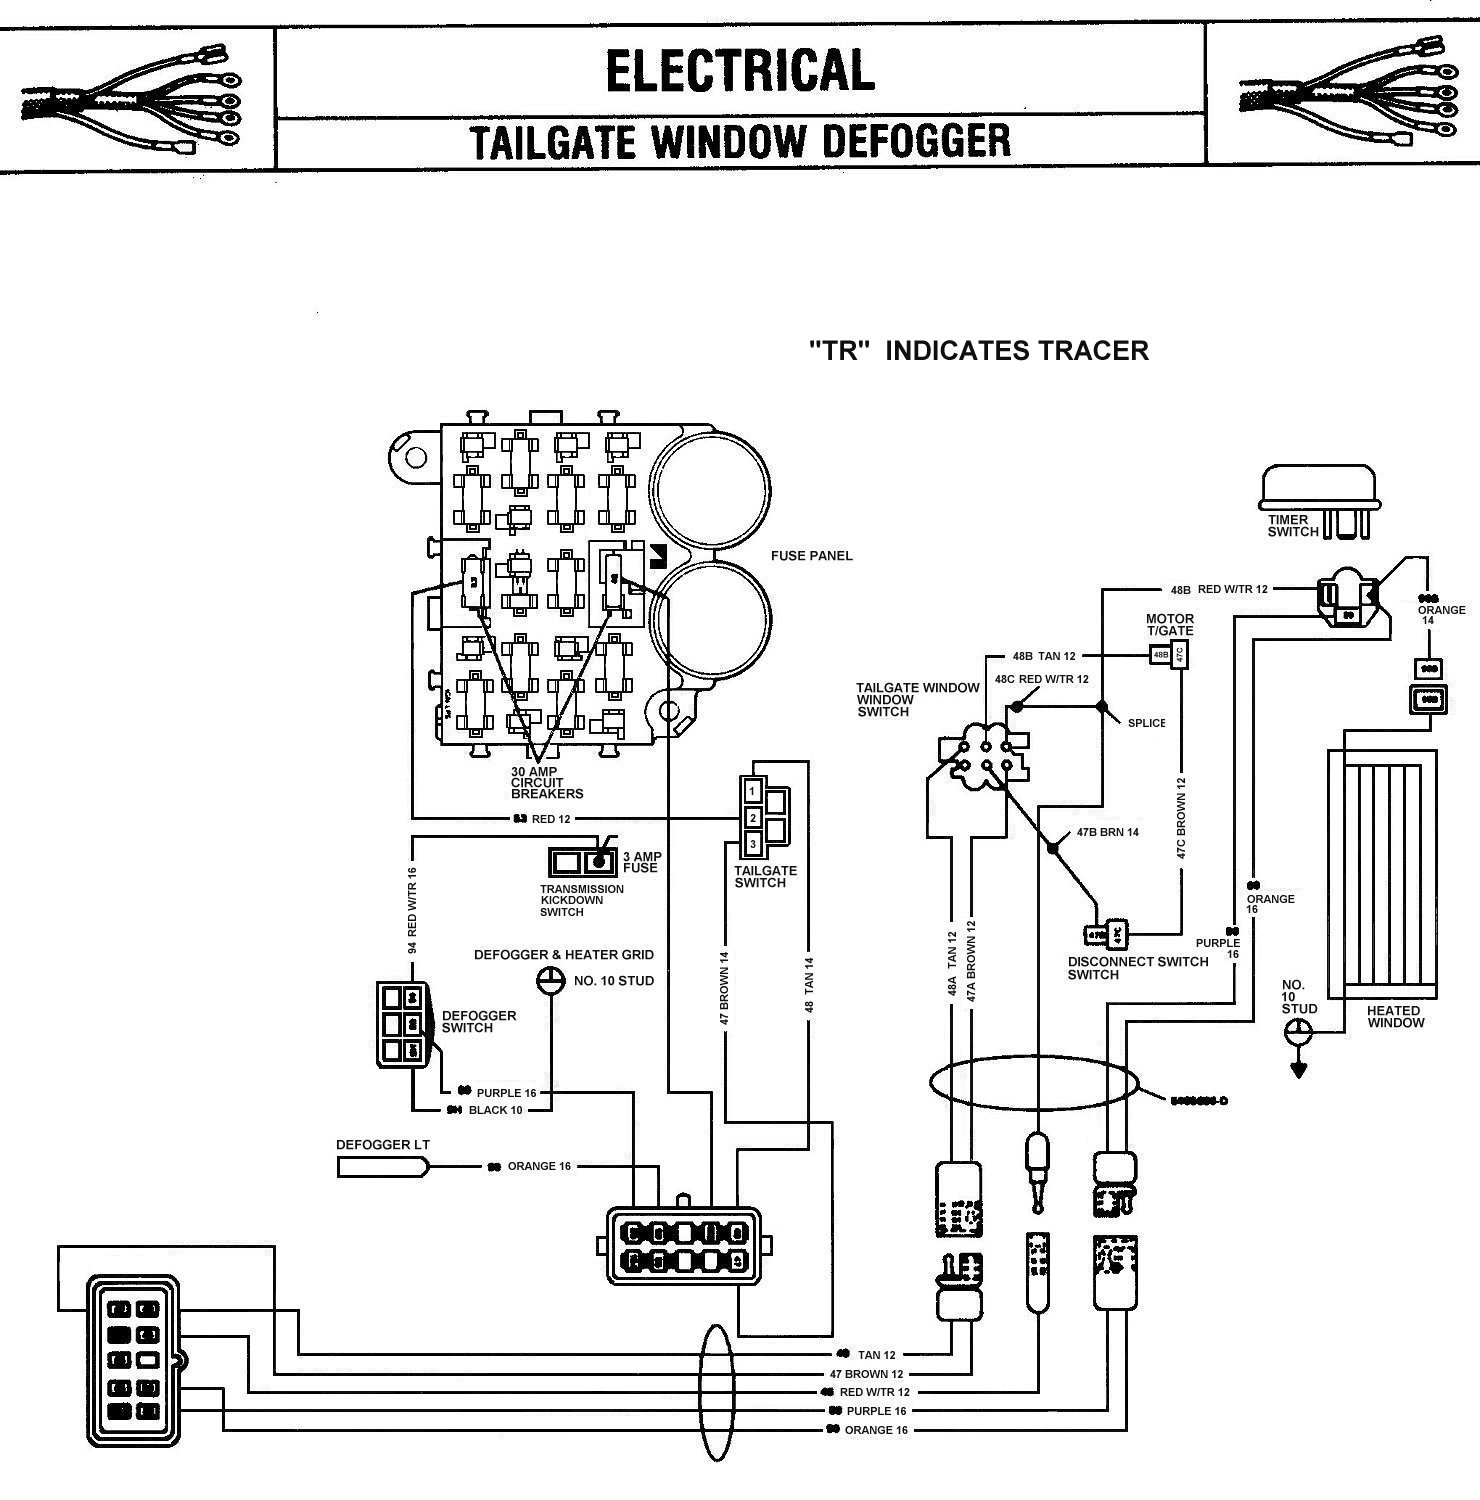 hight resolution of jeep rear defrost wiring wiring diagram operations jeep rear defrost wiring